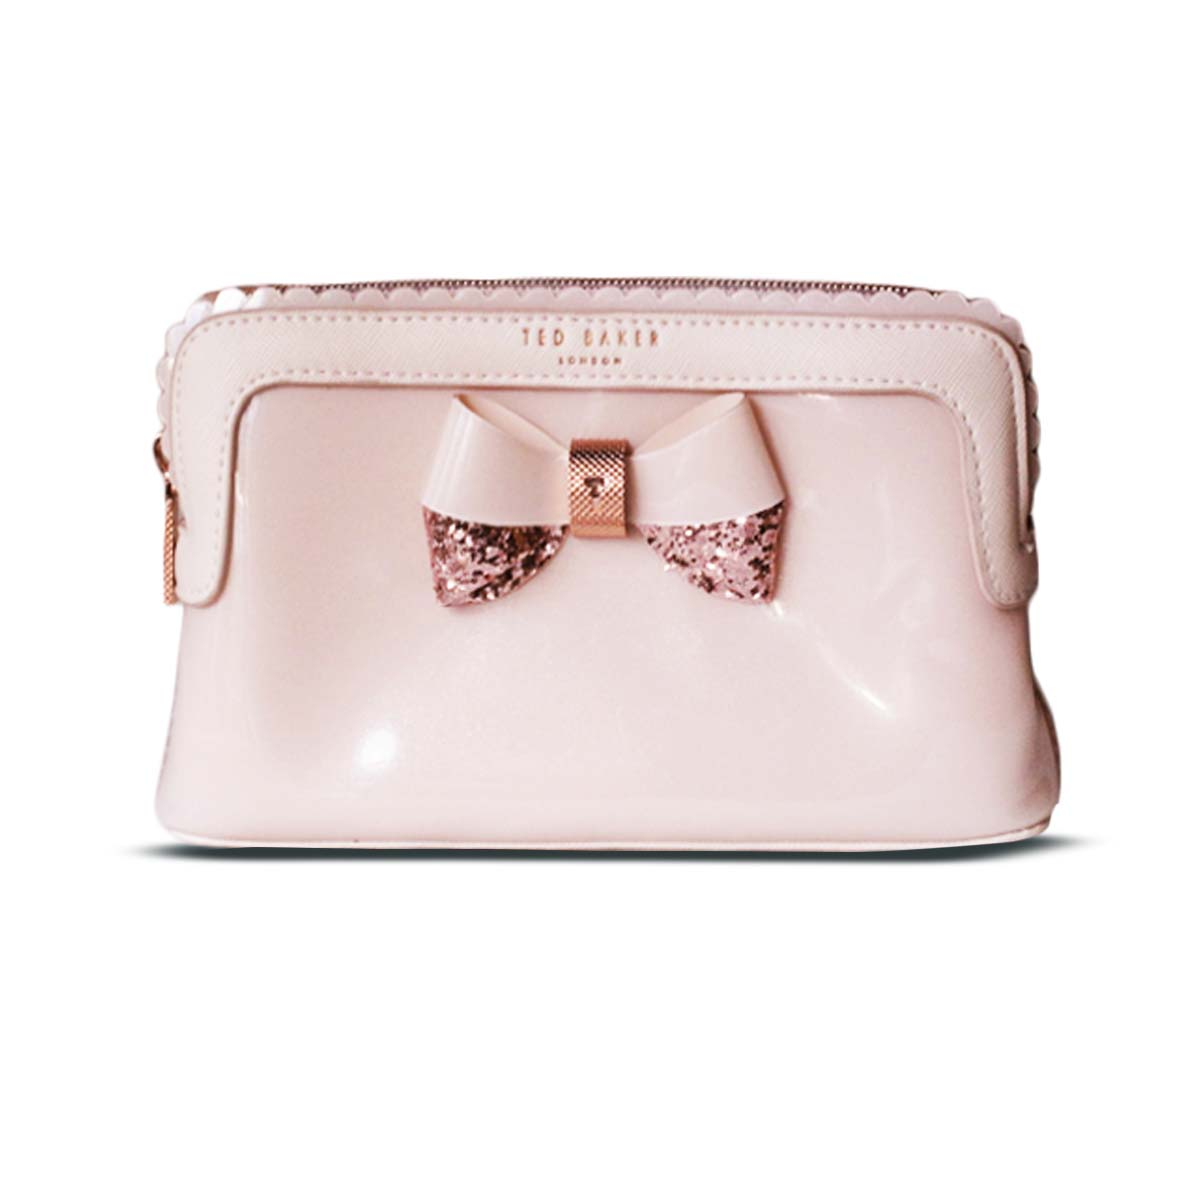 2045c70e21d1 TED BAKER Ardith Cosmetic clutch - finga-nails